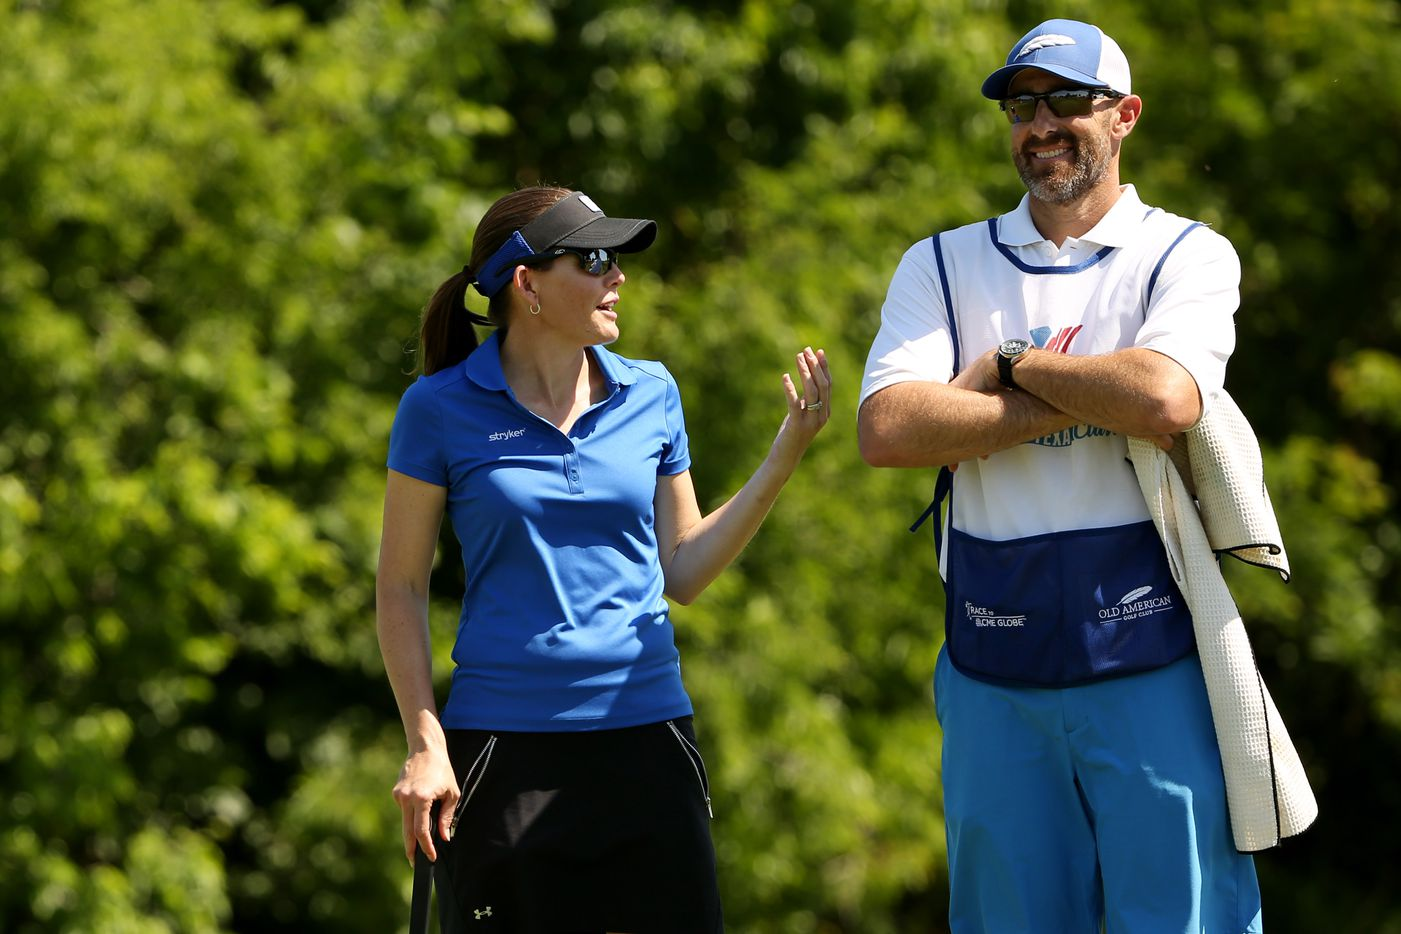 Stephanie Louden, of Frisco, Texas, speaks to her husband, Mike Louden, who is also her caddy, on the 17th green during round one of the 36-hole revised Volunteers of America LPGA North Dallas Classic.